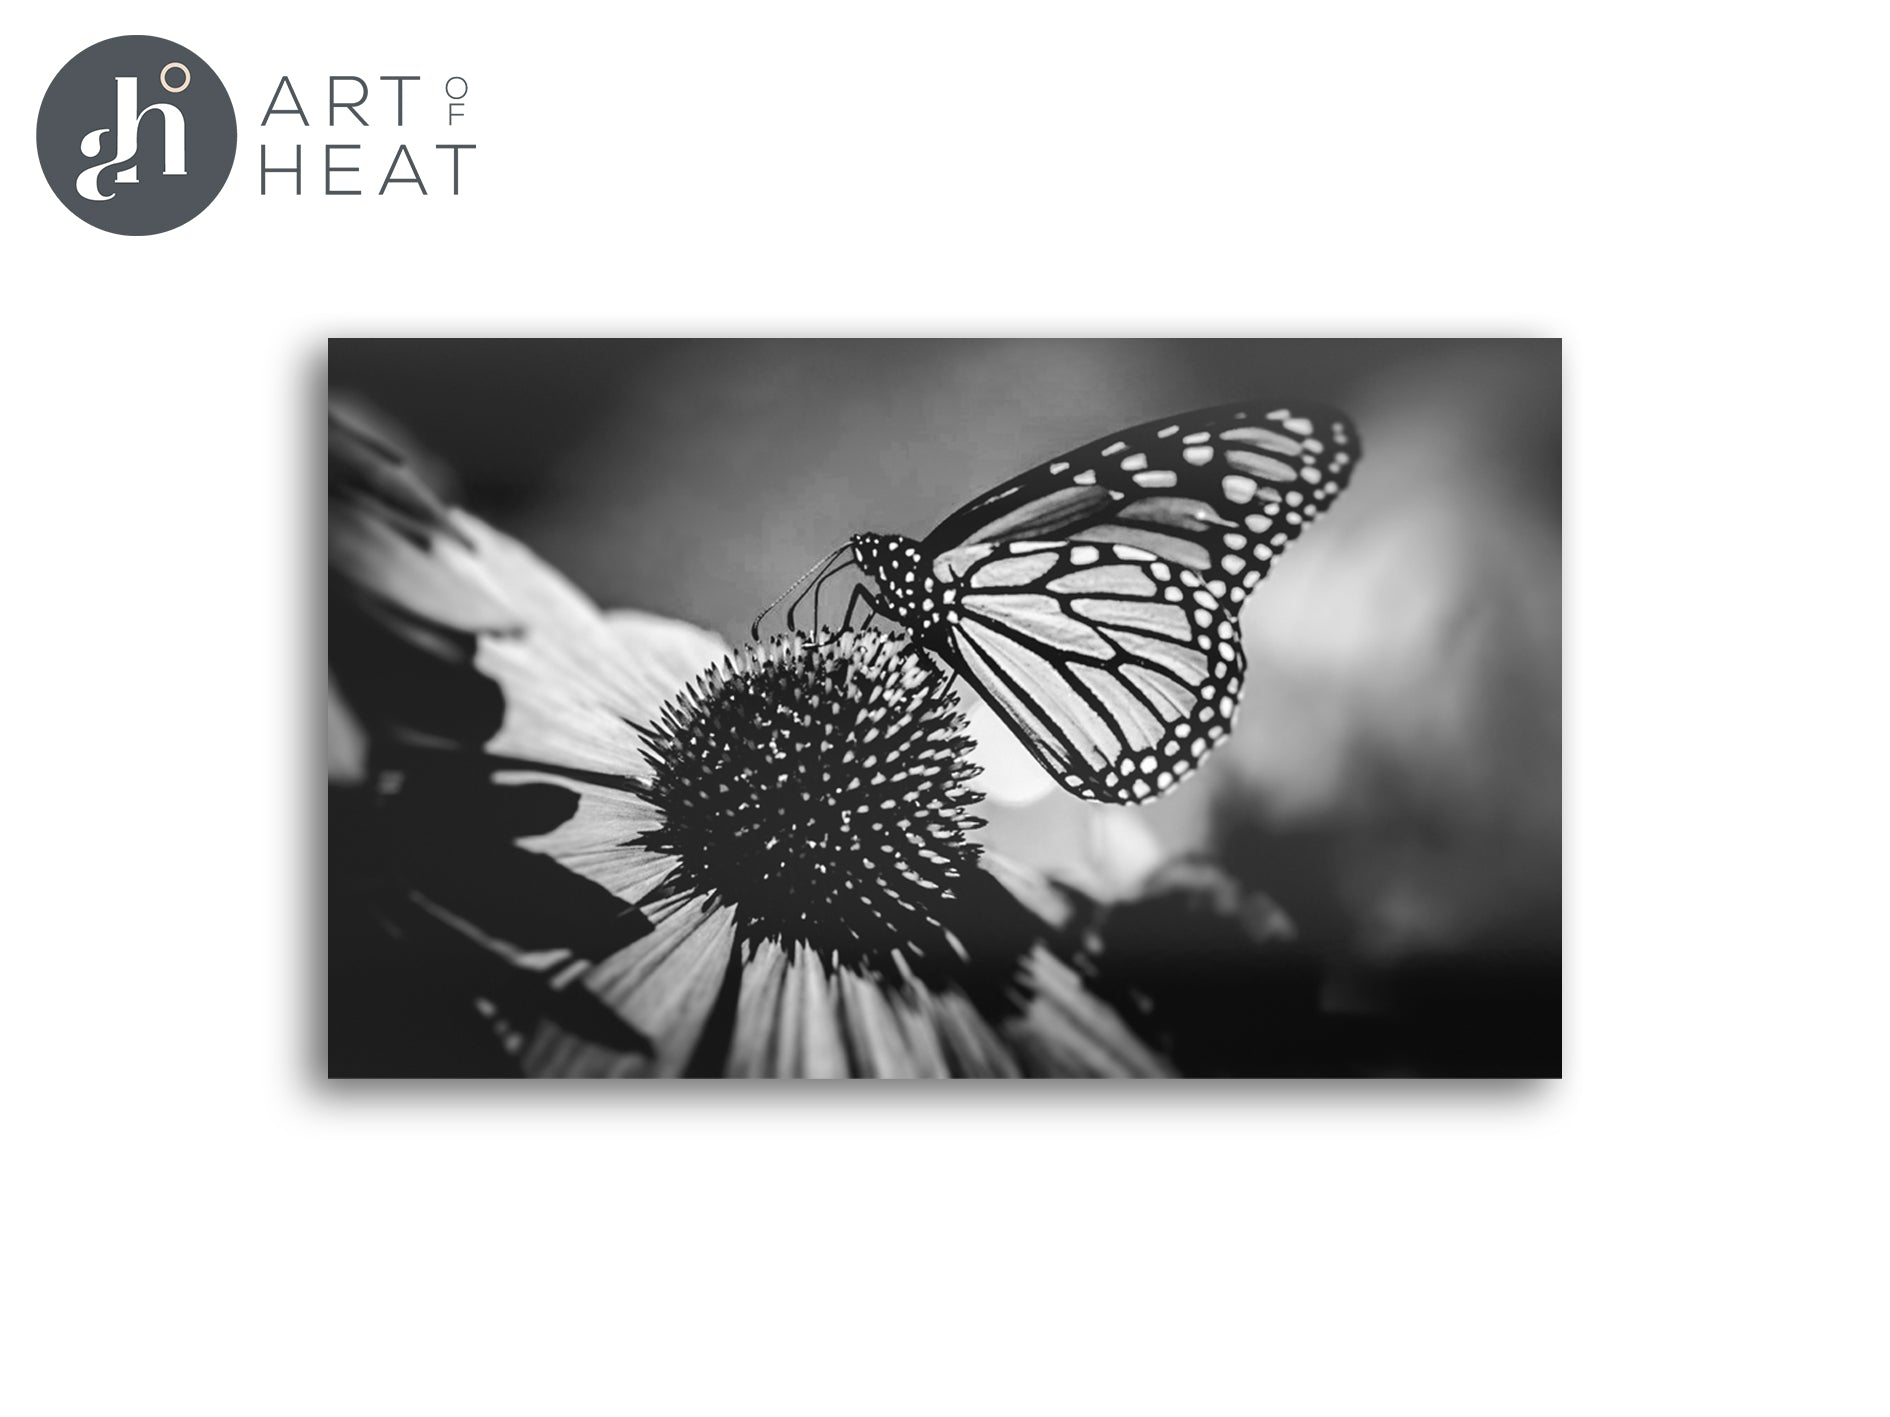 Limited Edition Monarch Panels - Price Includes Packaging & Delivery